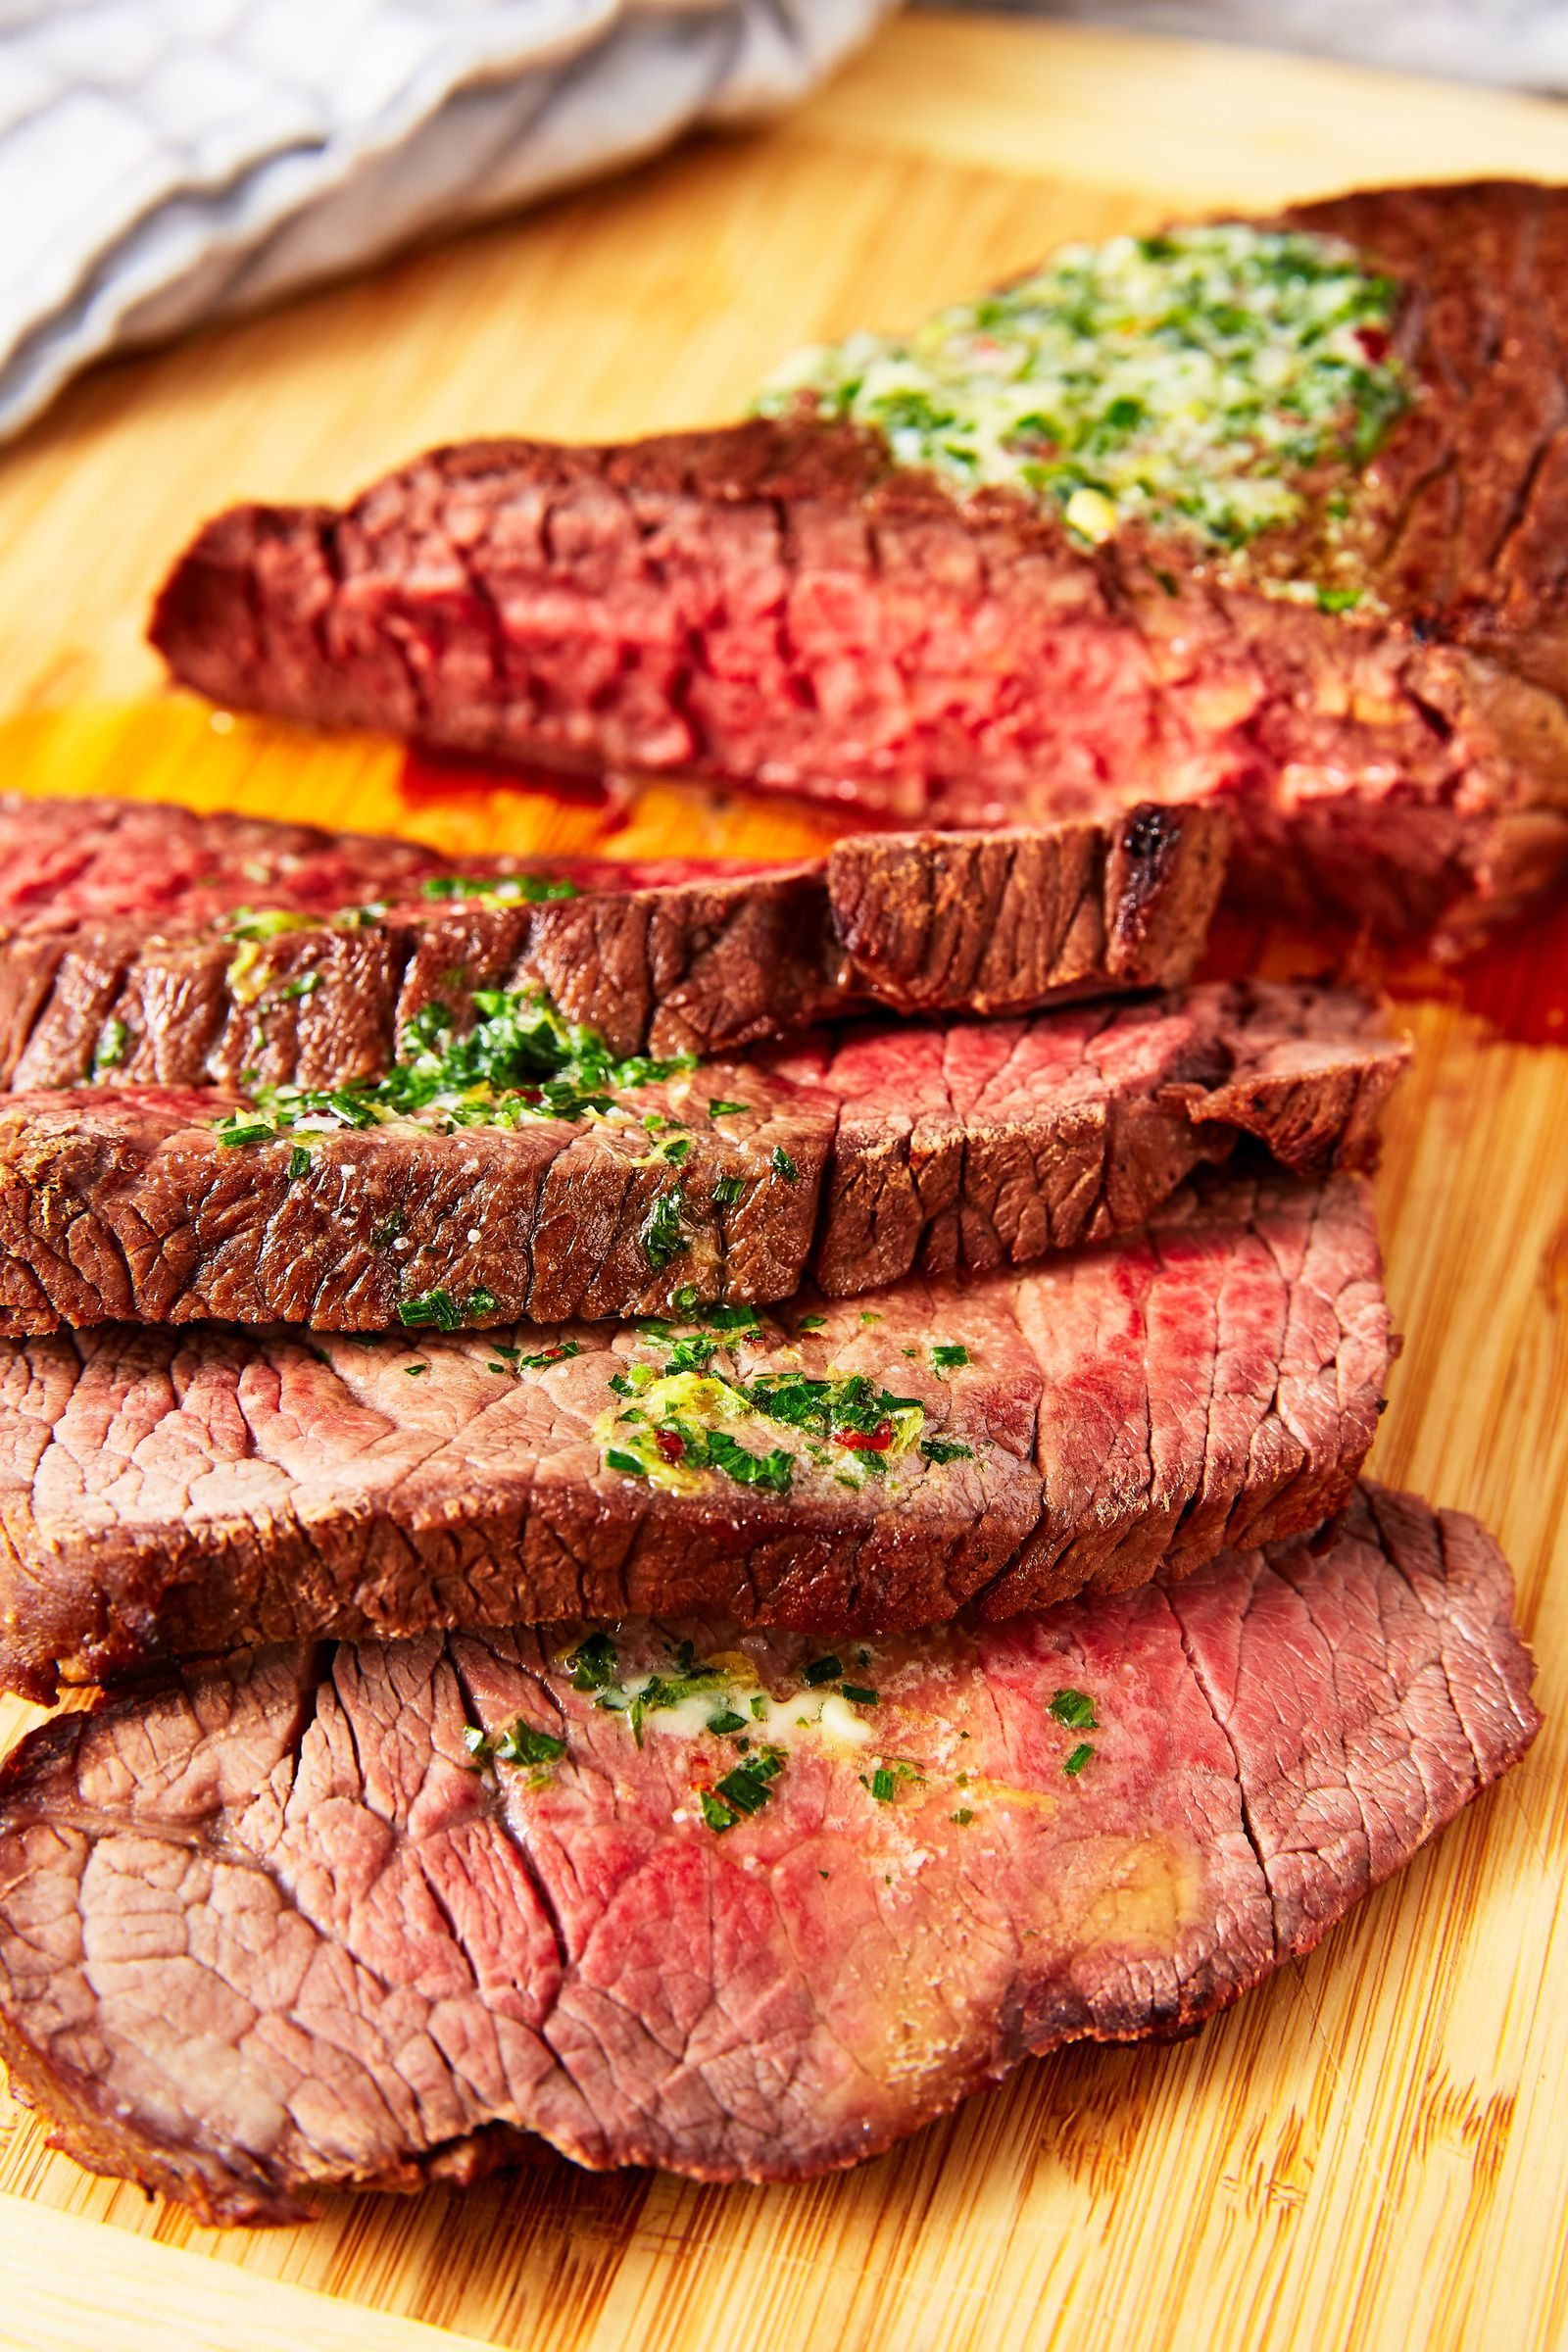 How to cook beef round steak on grill